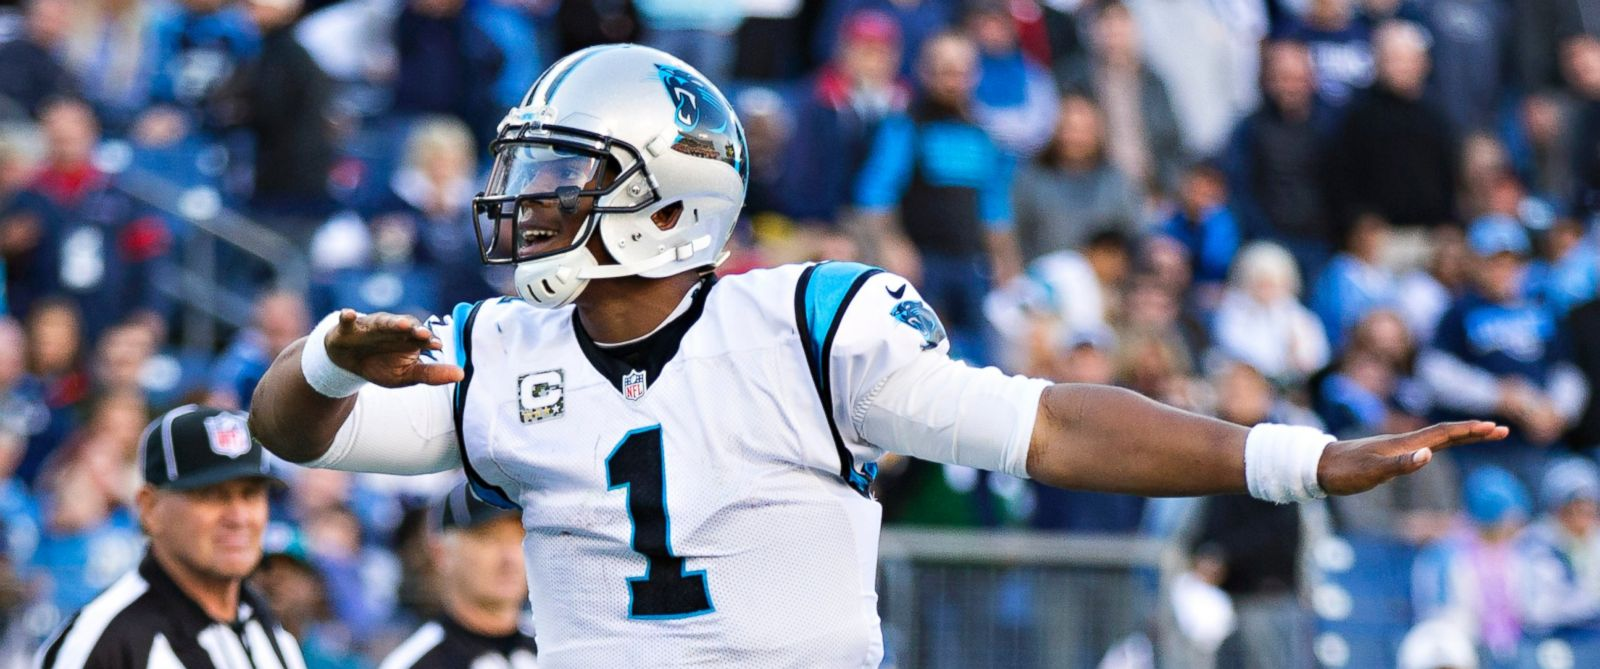 PHOTO: Cam Newton of the Carolina Panthers does his touchdown dance after scoring a touchdown against the Tennessee Titans at Nissan Stadium on Nov. 15, 2015 in Nashville, Tennessee.